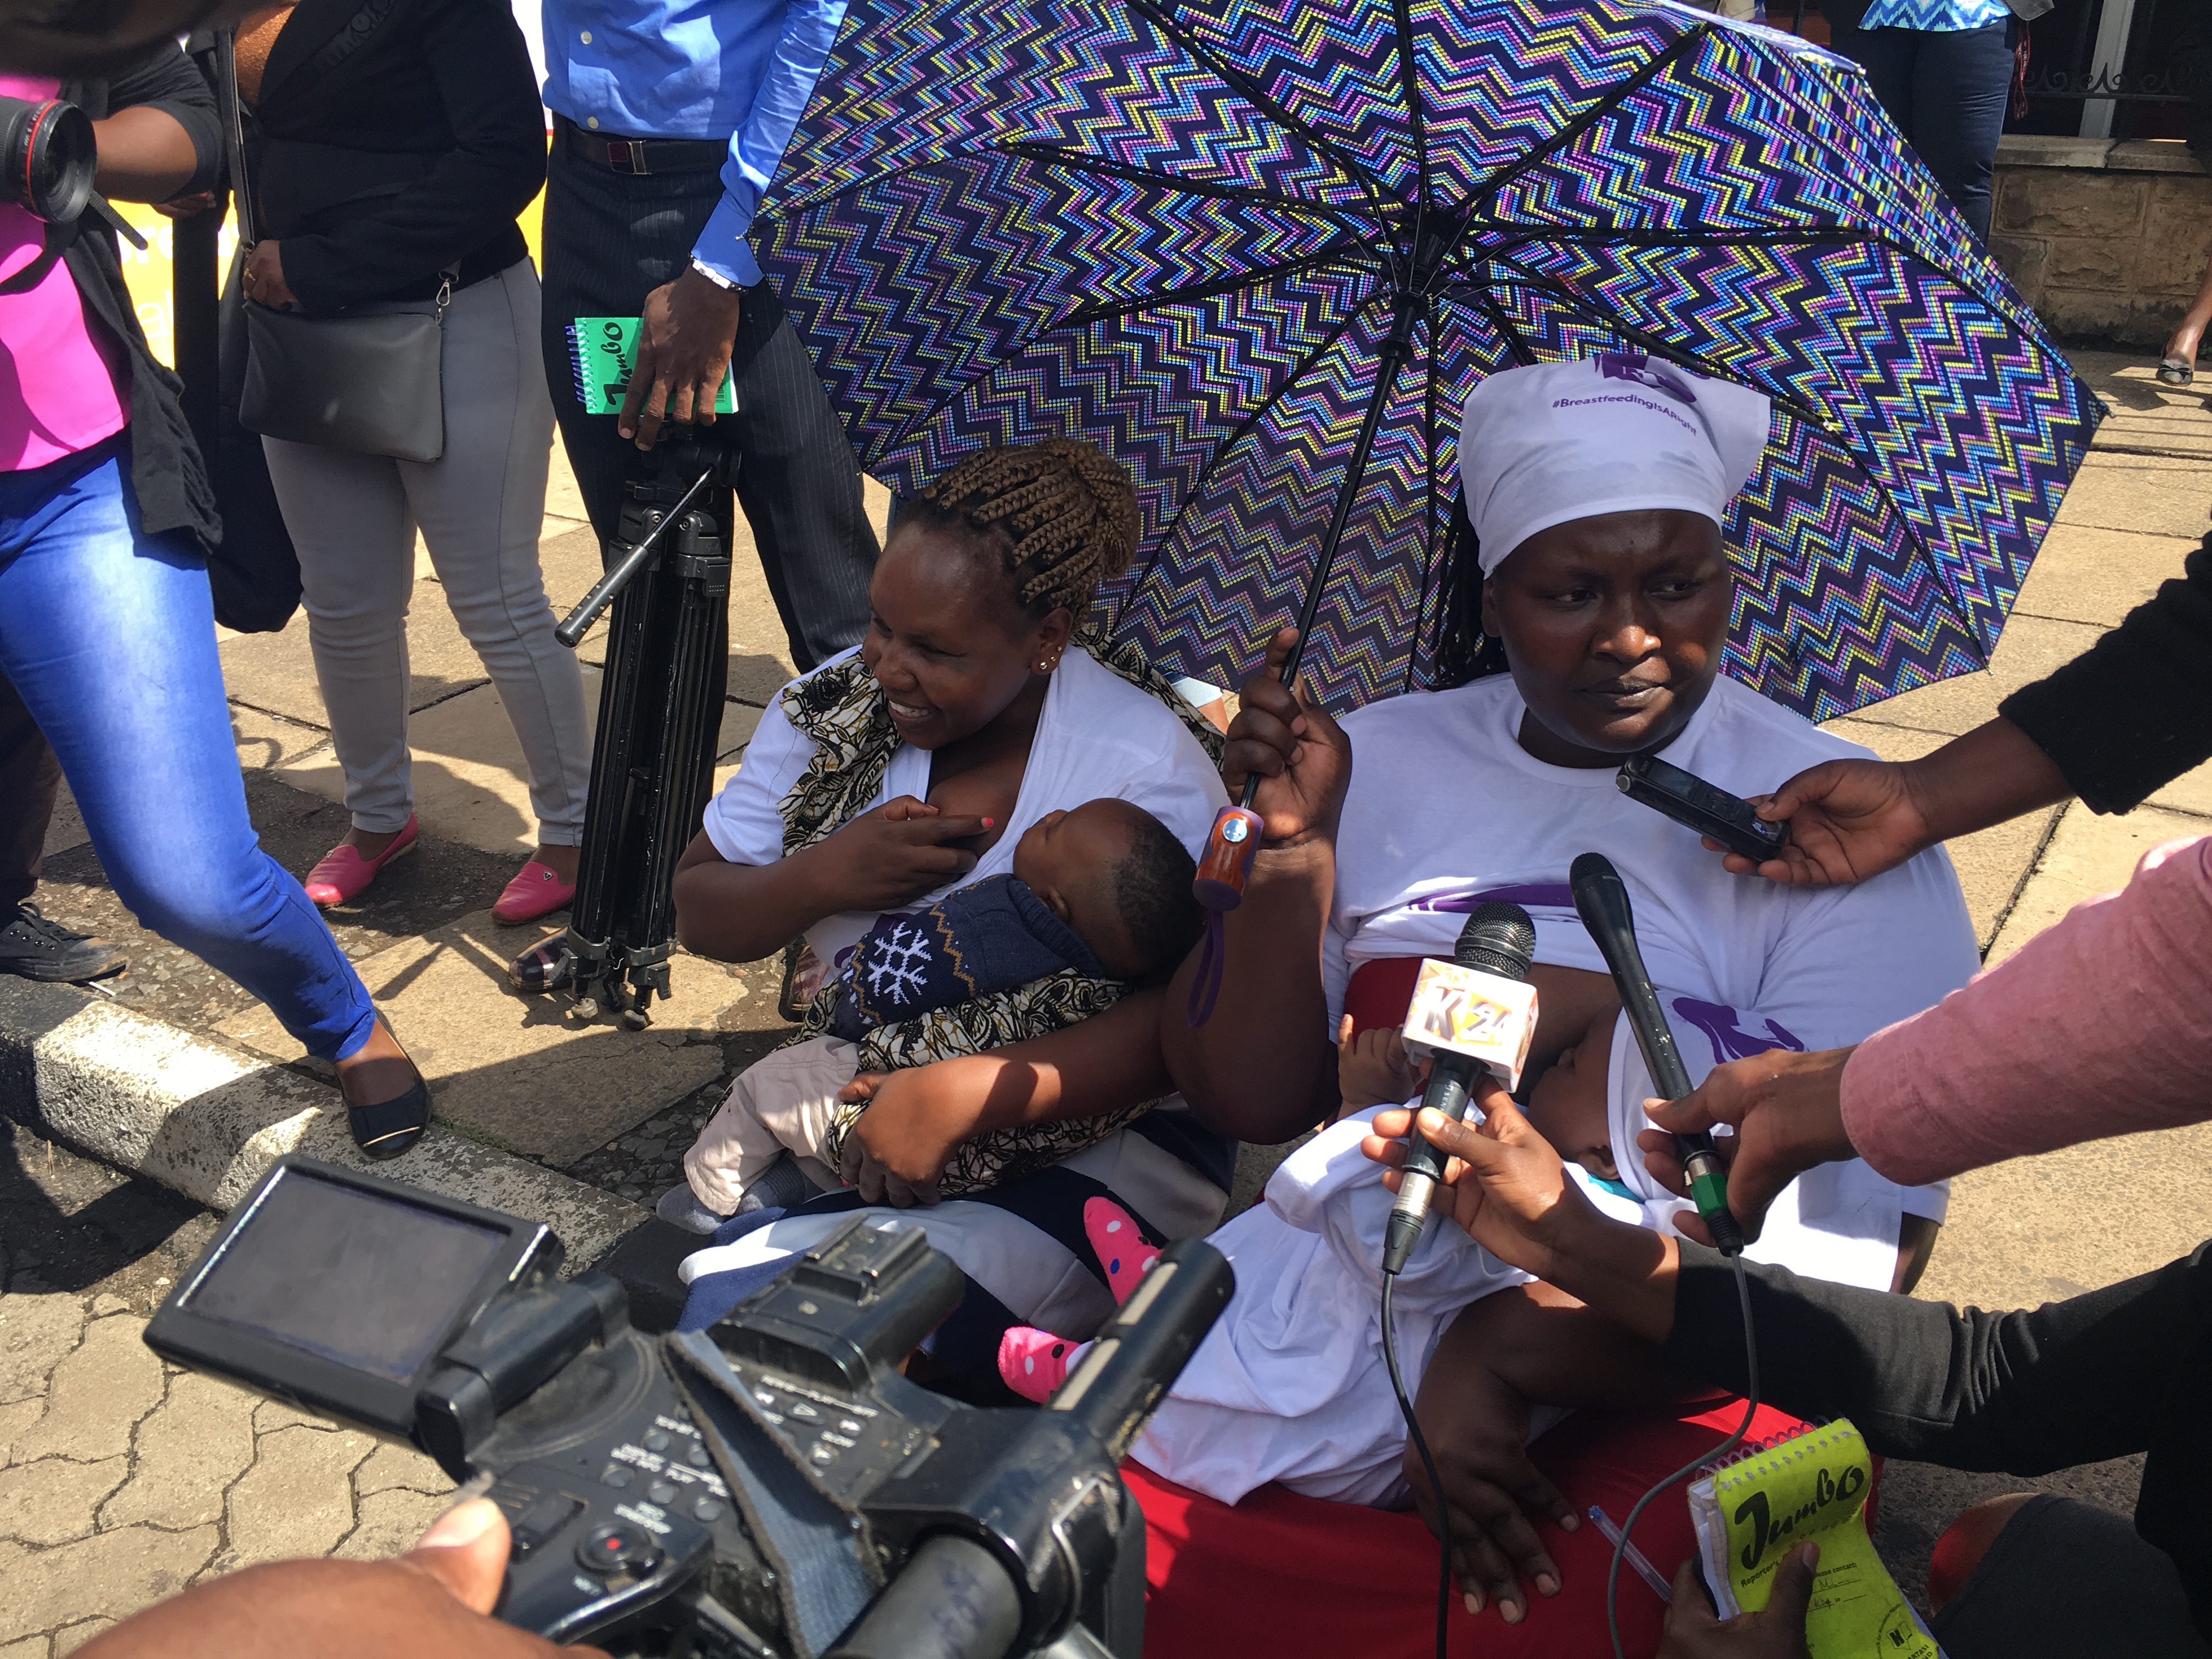 Mothers breastfeed there children outside parliament as they respond to questions from journalists in Nairobi, Kenya, May 15, 2018.